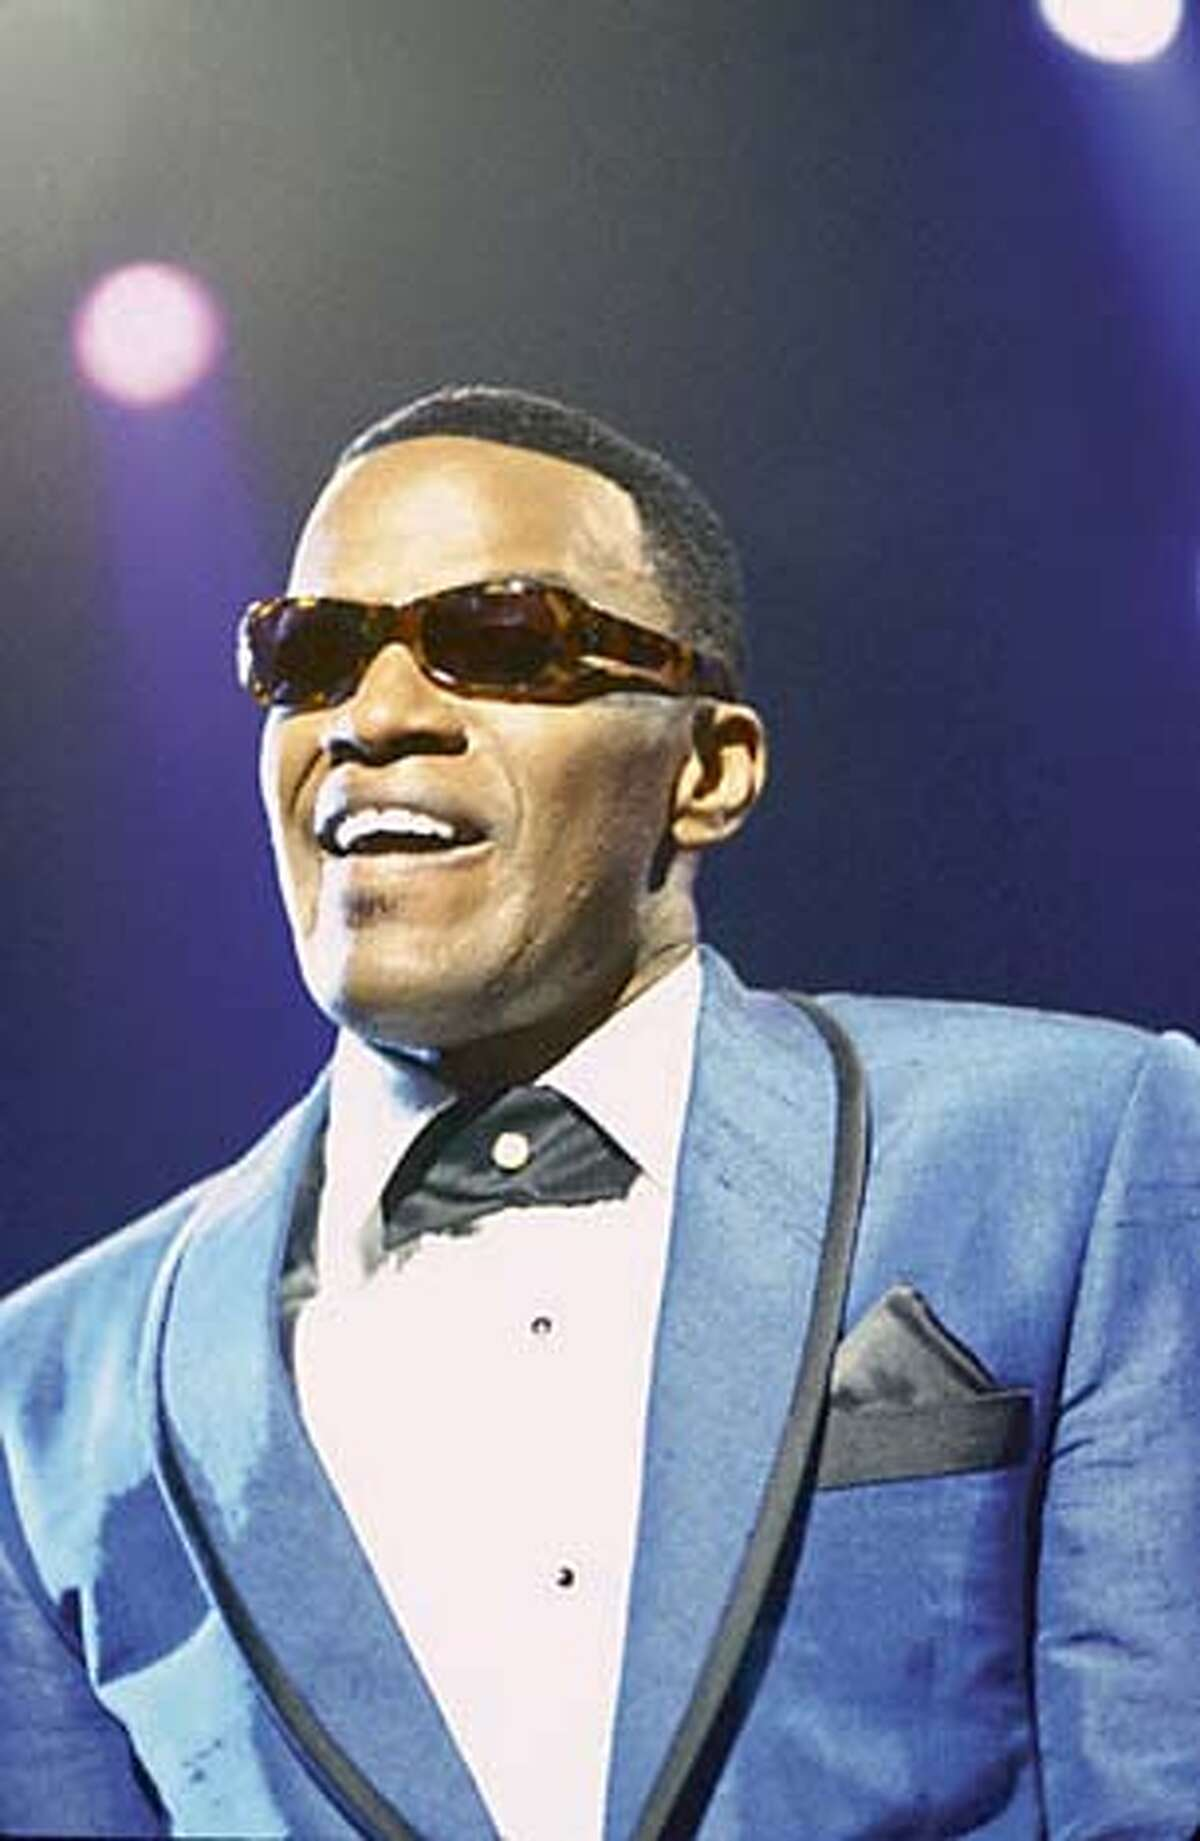 JAMIE FOXX as American legend Ray Charles in the musical biographical drama, Ray. Datebook#Datebook#SundayDateBook#10-24-2004#ALL#Advance##0422414911